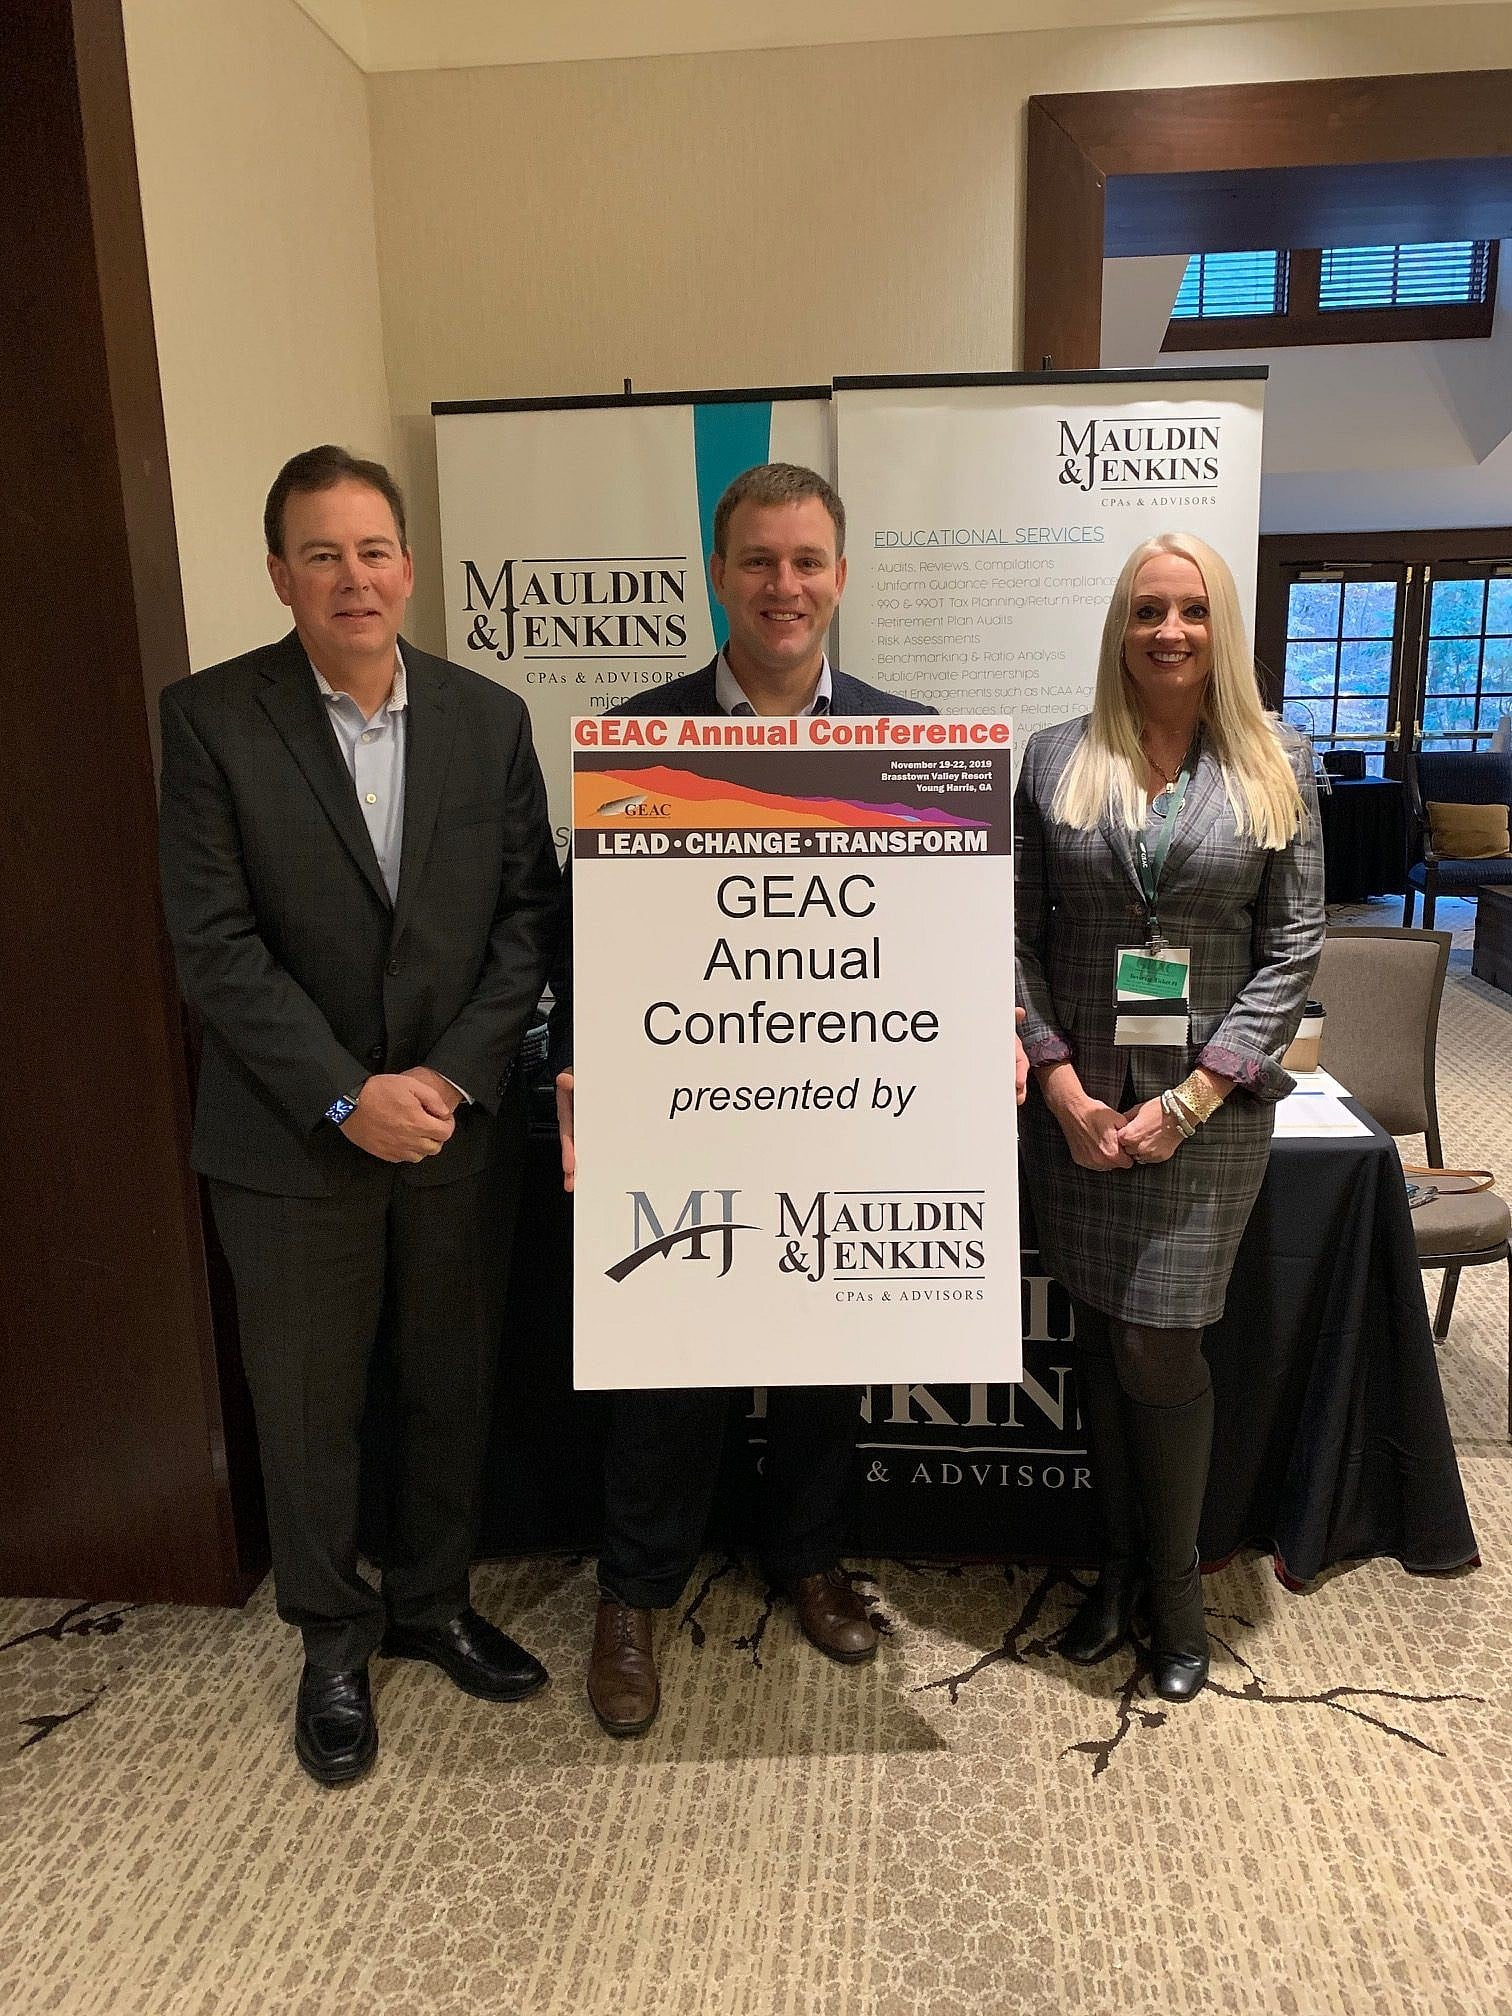 mauldin & jenkins geac conference jeff fucito jon schultz and aleisa howell